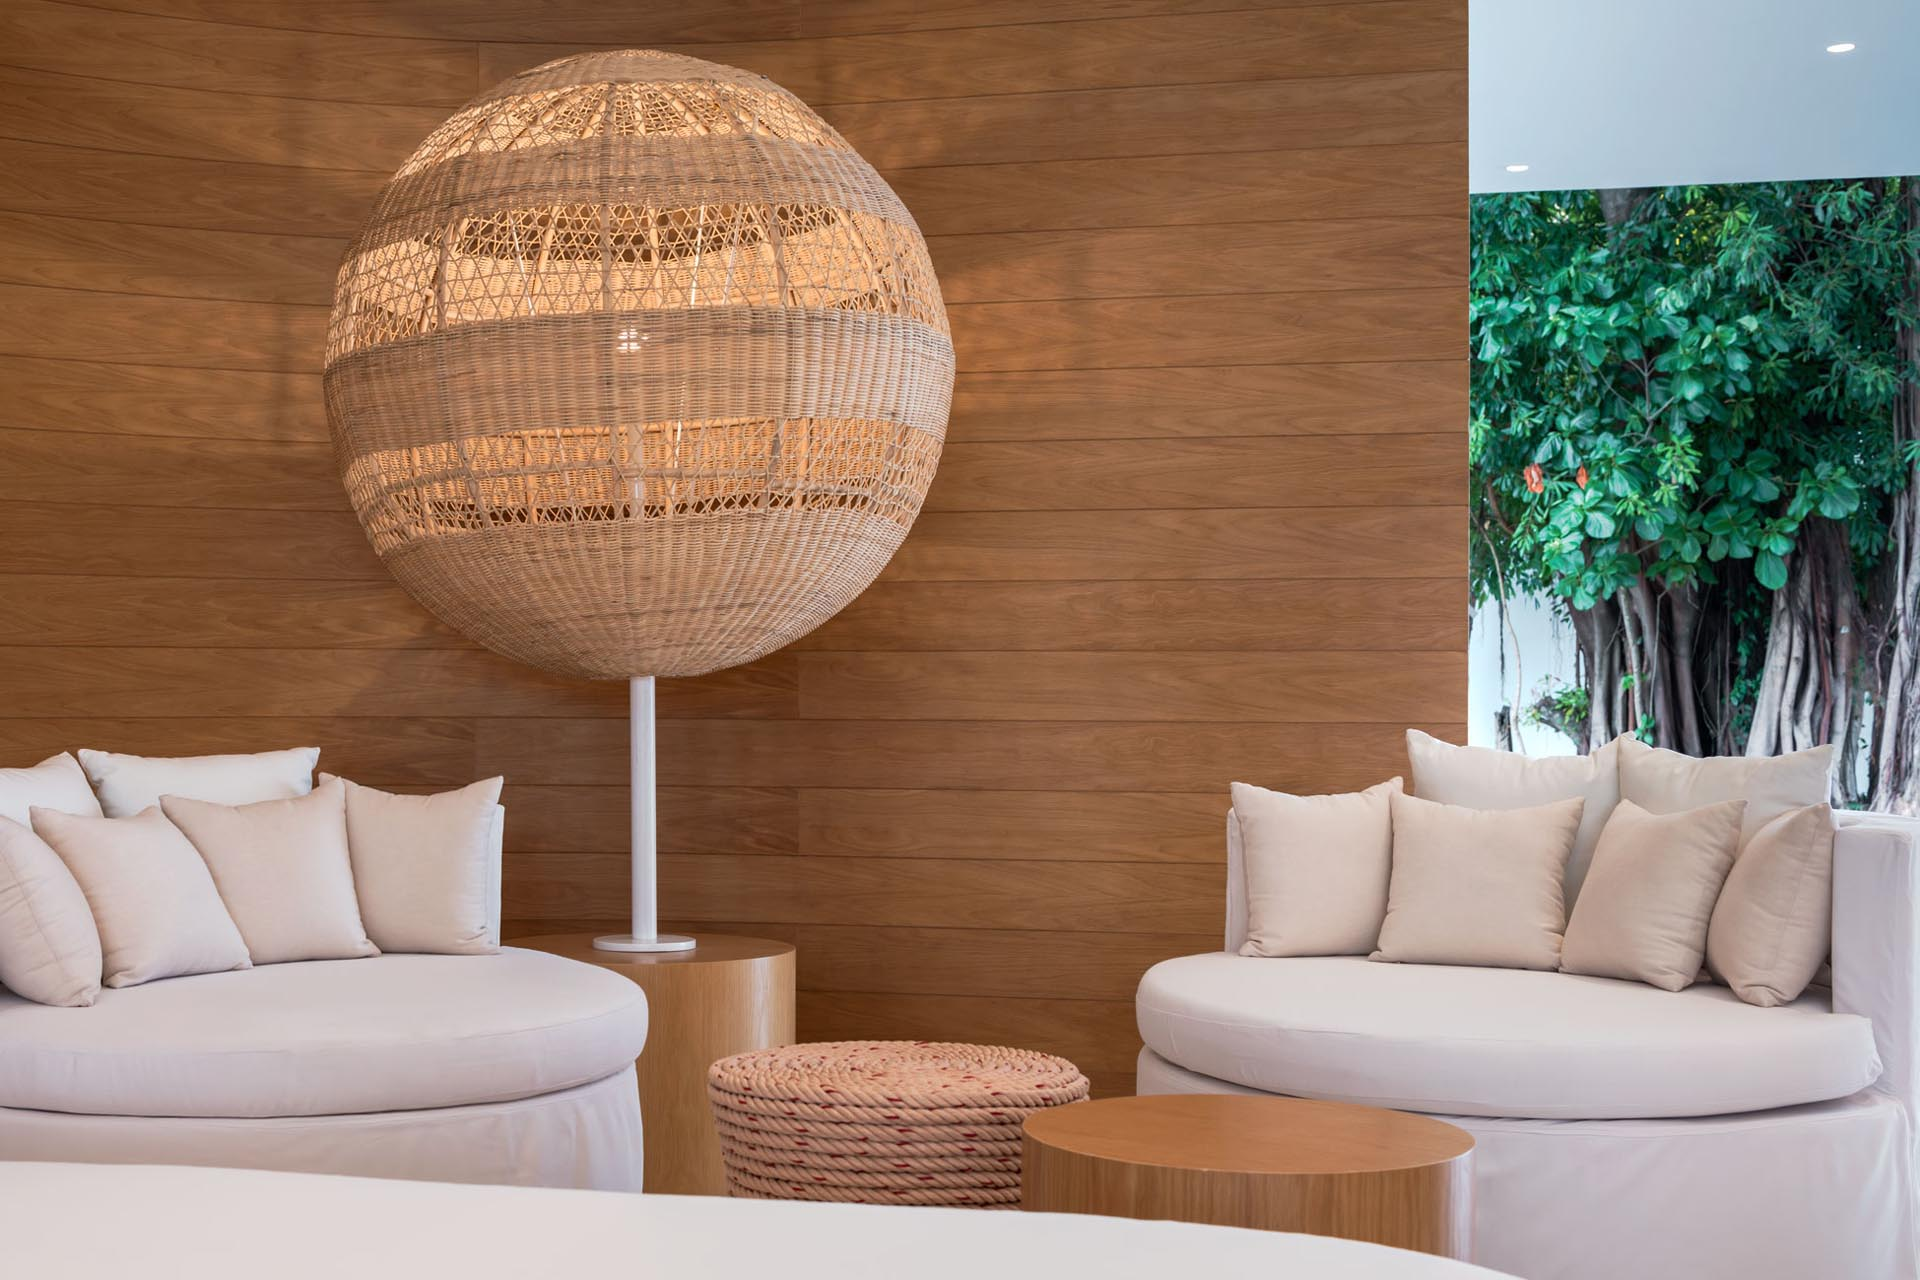 A modern hotel lobby with wood walls, woven lighting, and round furniture.